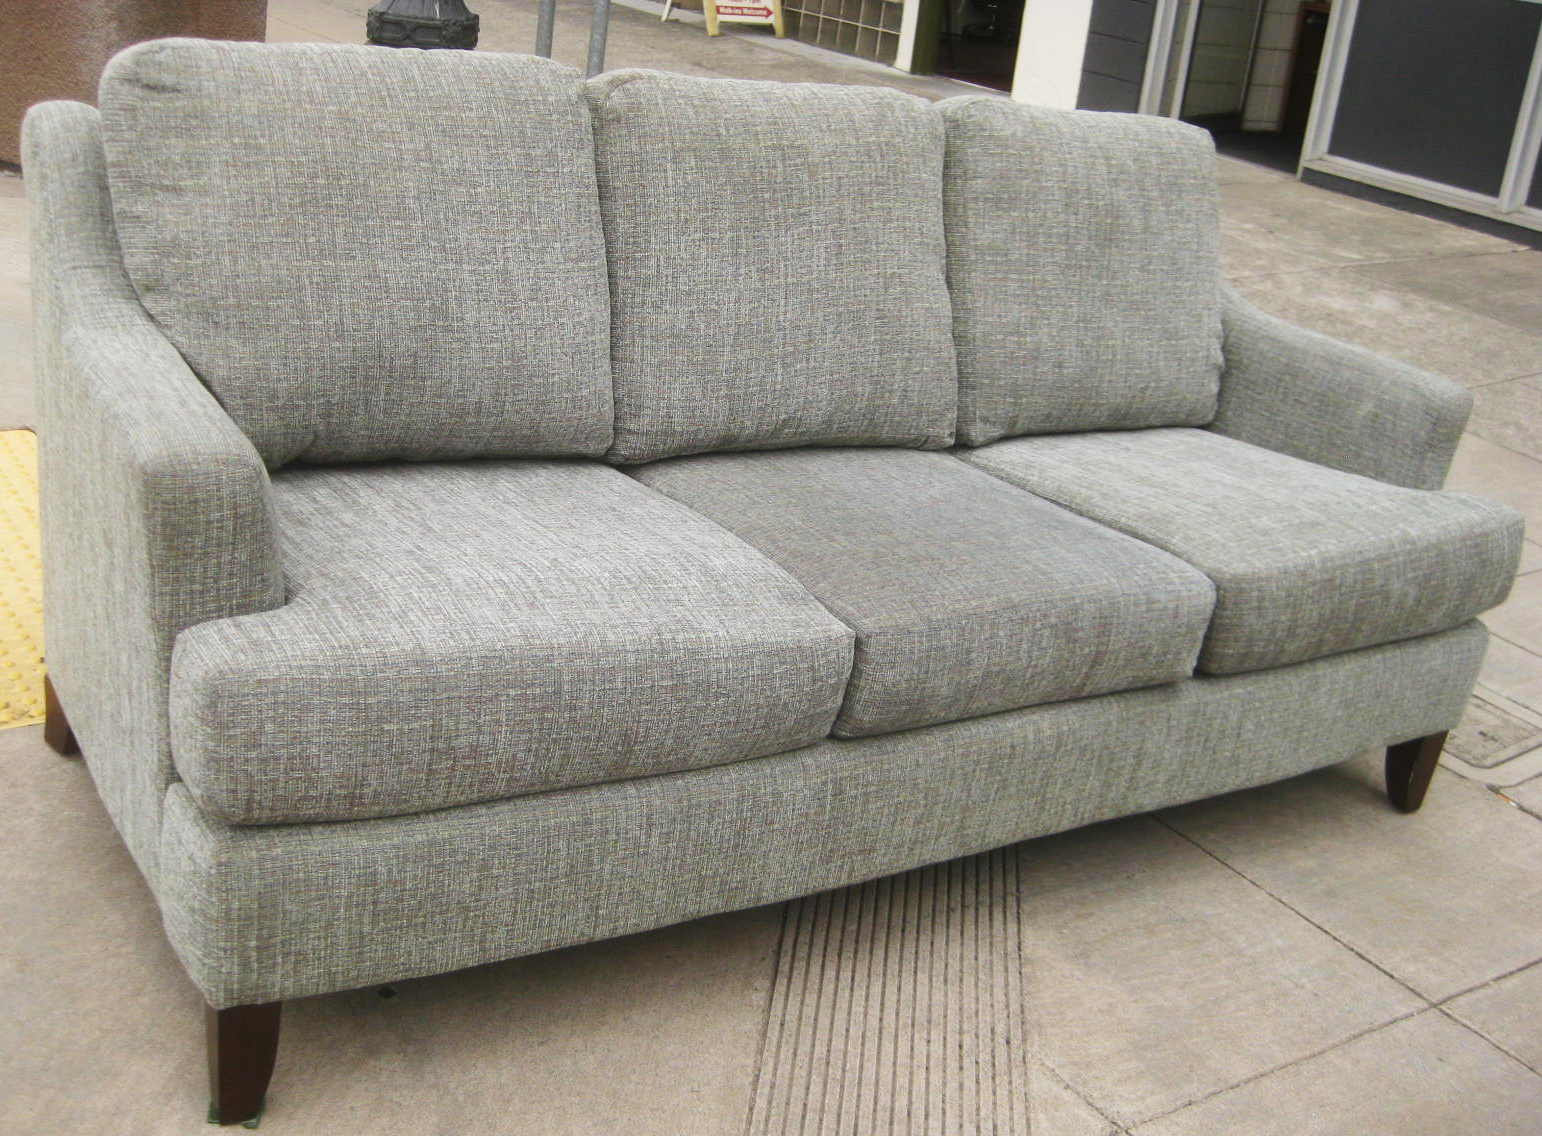 Uhuru furniture collectibles sold comfy gray sofa 145 for Grey comfy chair